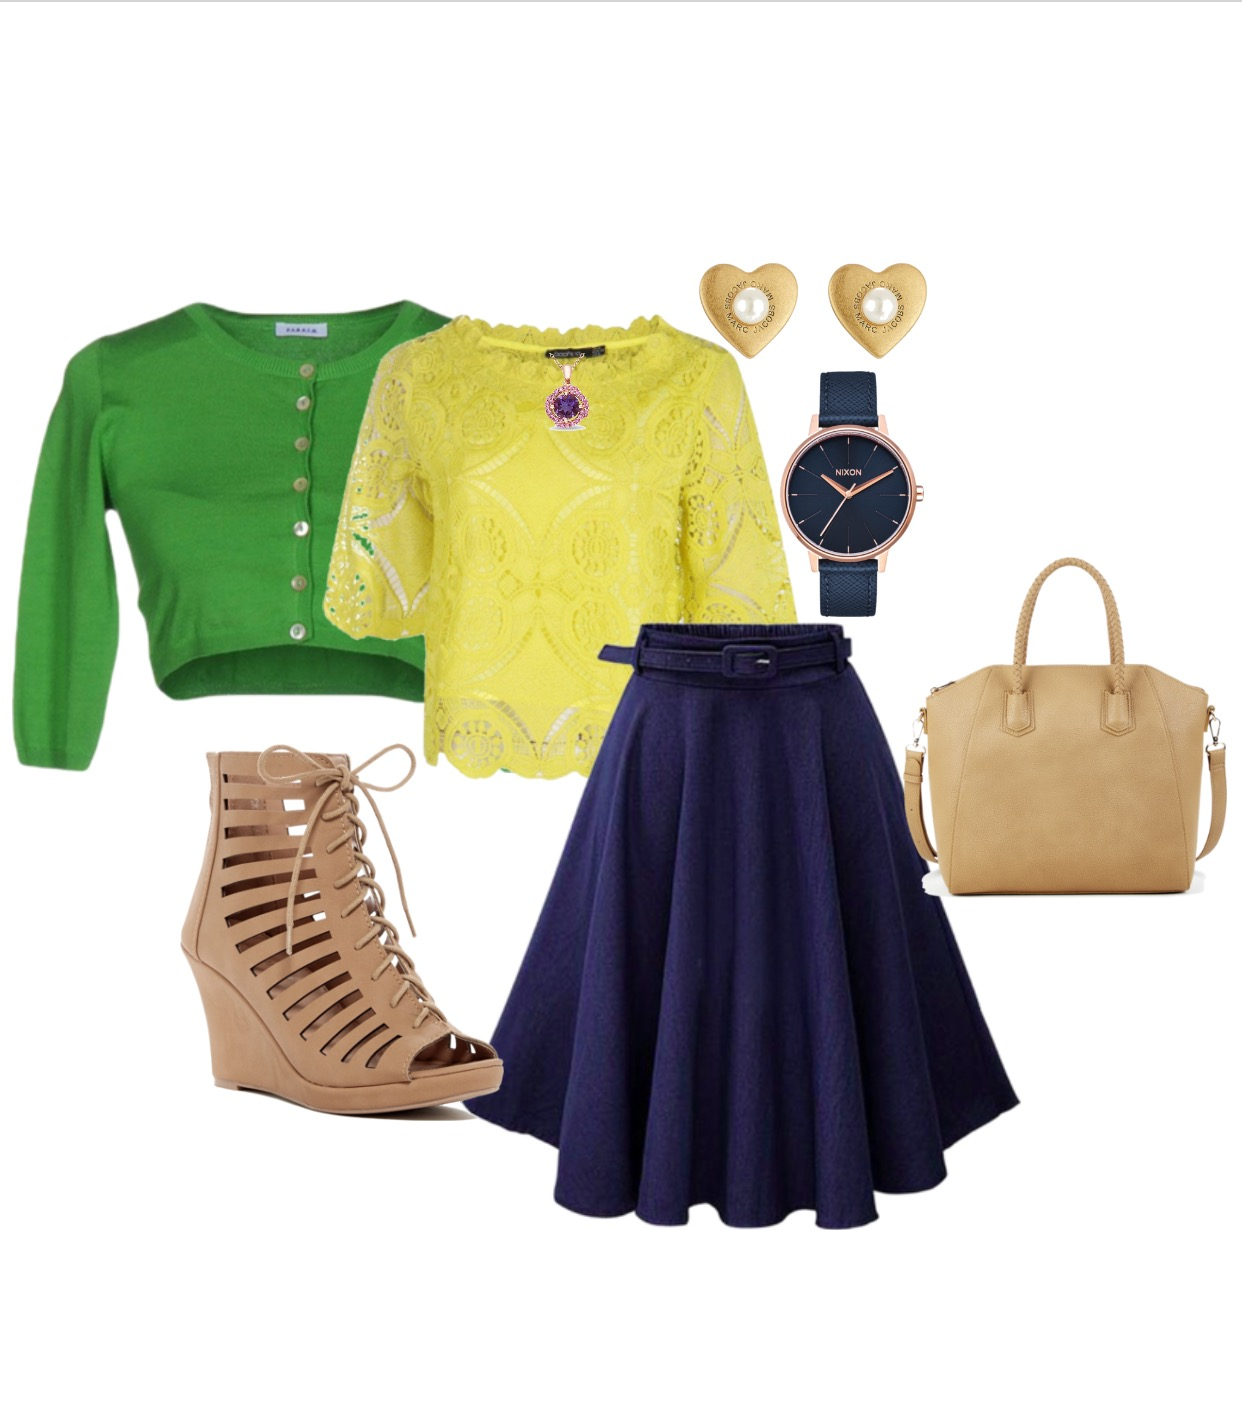 Jenny is a mother of 2 teenage girls. She loves jewelry but never wears it. Jenny explained that she has gotten use to wearing khakis and jeans everywhere. We decided to create her a transitional look one that can be worn at work, church, or on a date. We incorporated Jenny's favorite colors (blue, green, yellow, and purple) to show how to pair multiple colors tastefully.